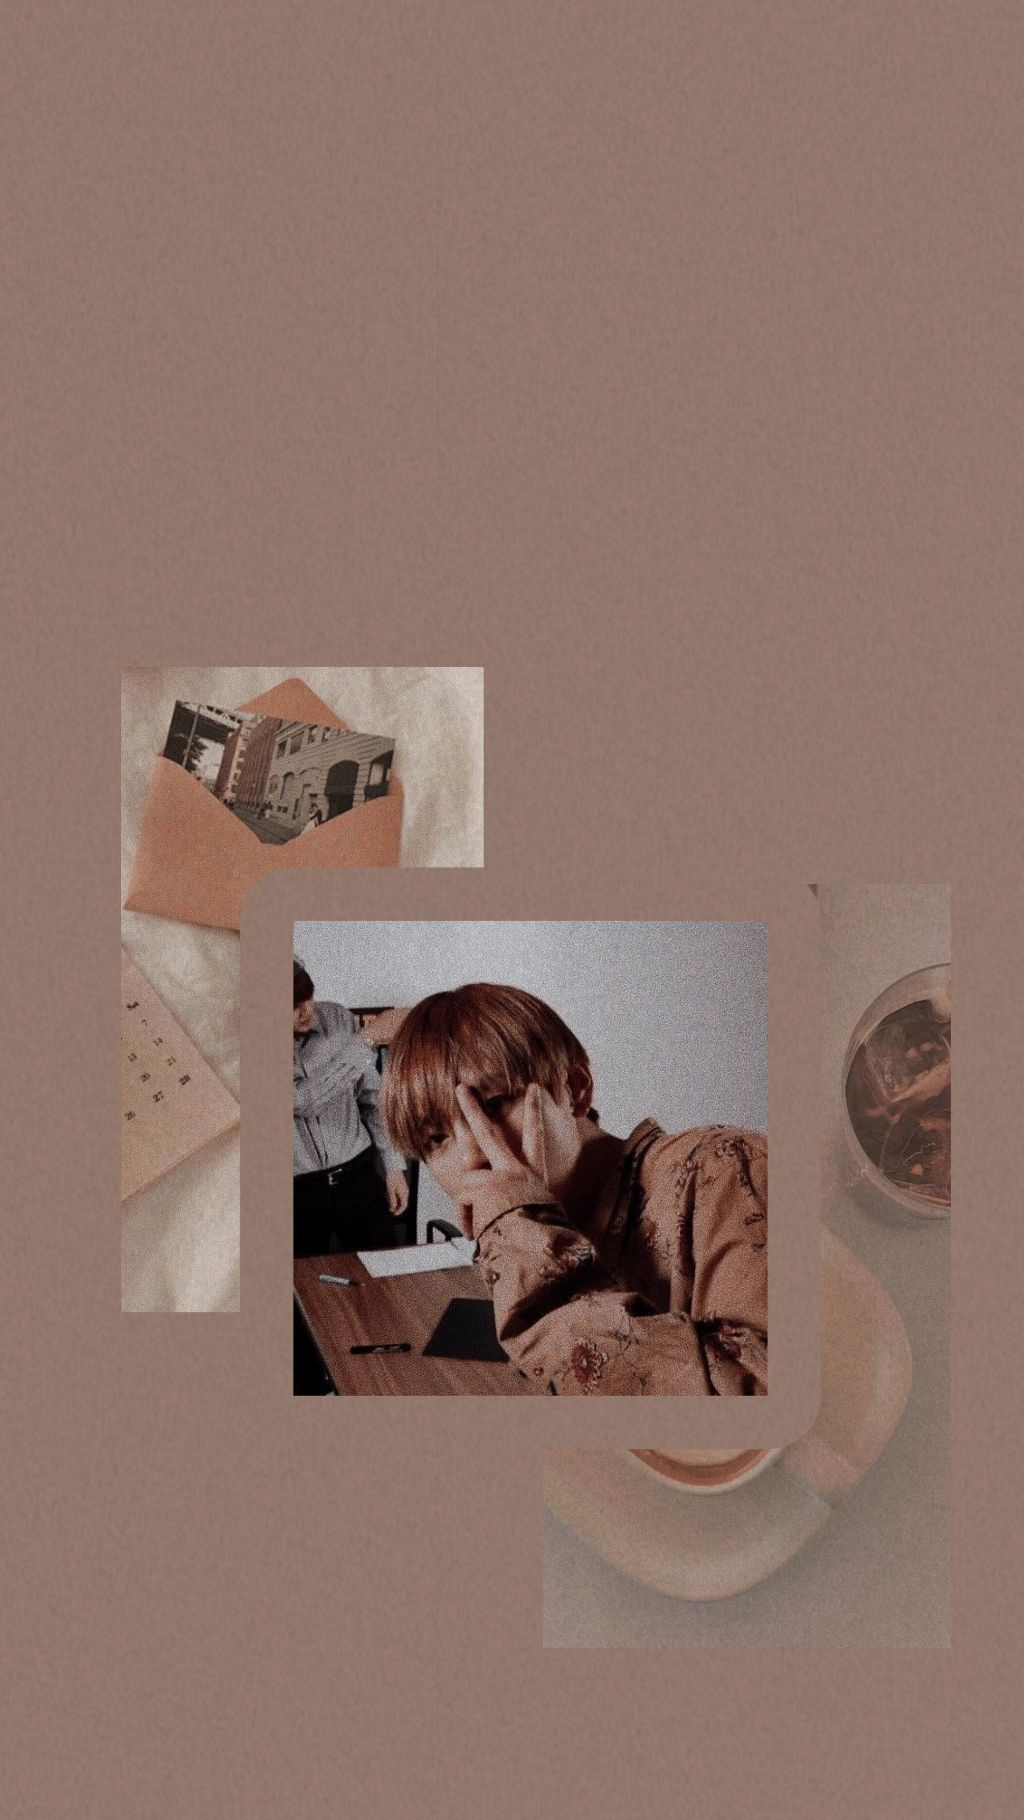 Photo By Xm3008 In 2020 Iphone Wallpaper Bts Kim Taehyung Wallpaper Bts Wallpaper